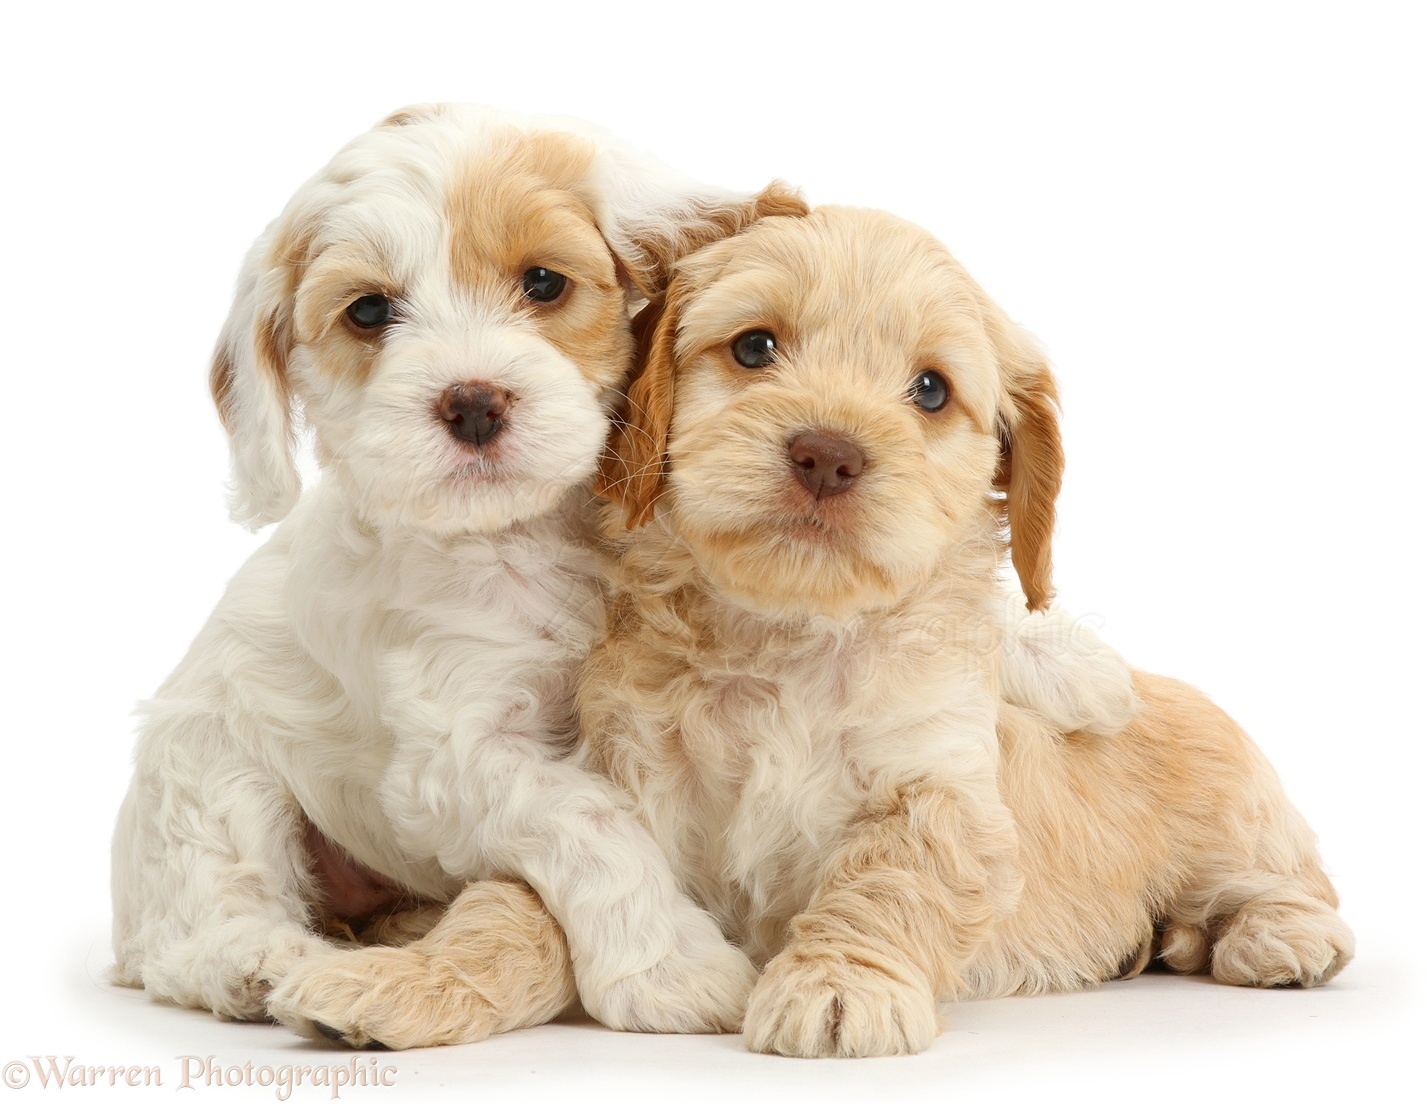 Dogs & Puppies photo selection by Warren Photographic, p1